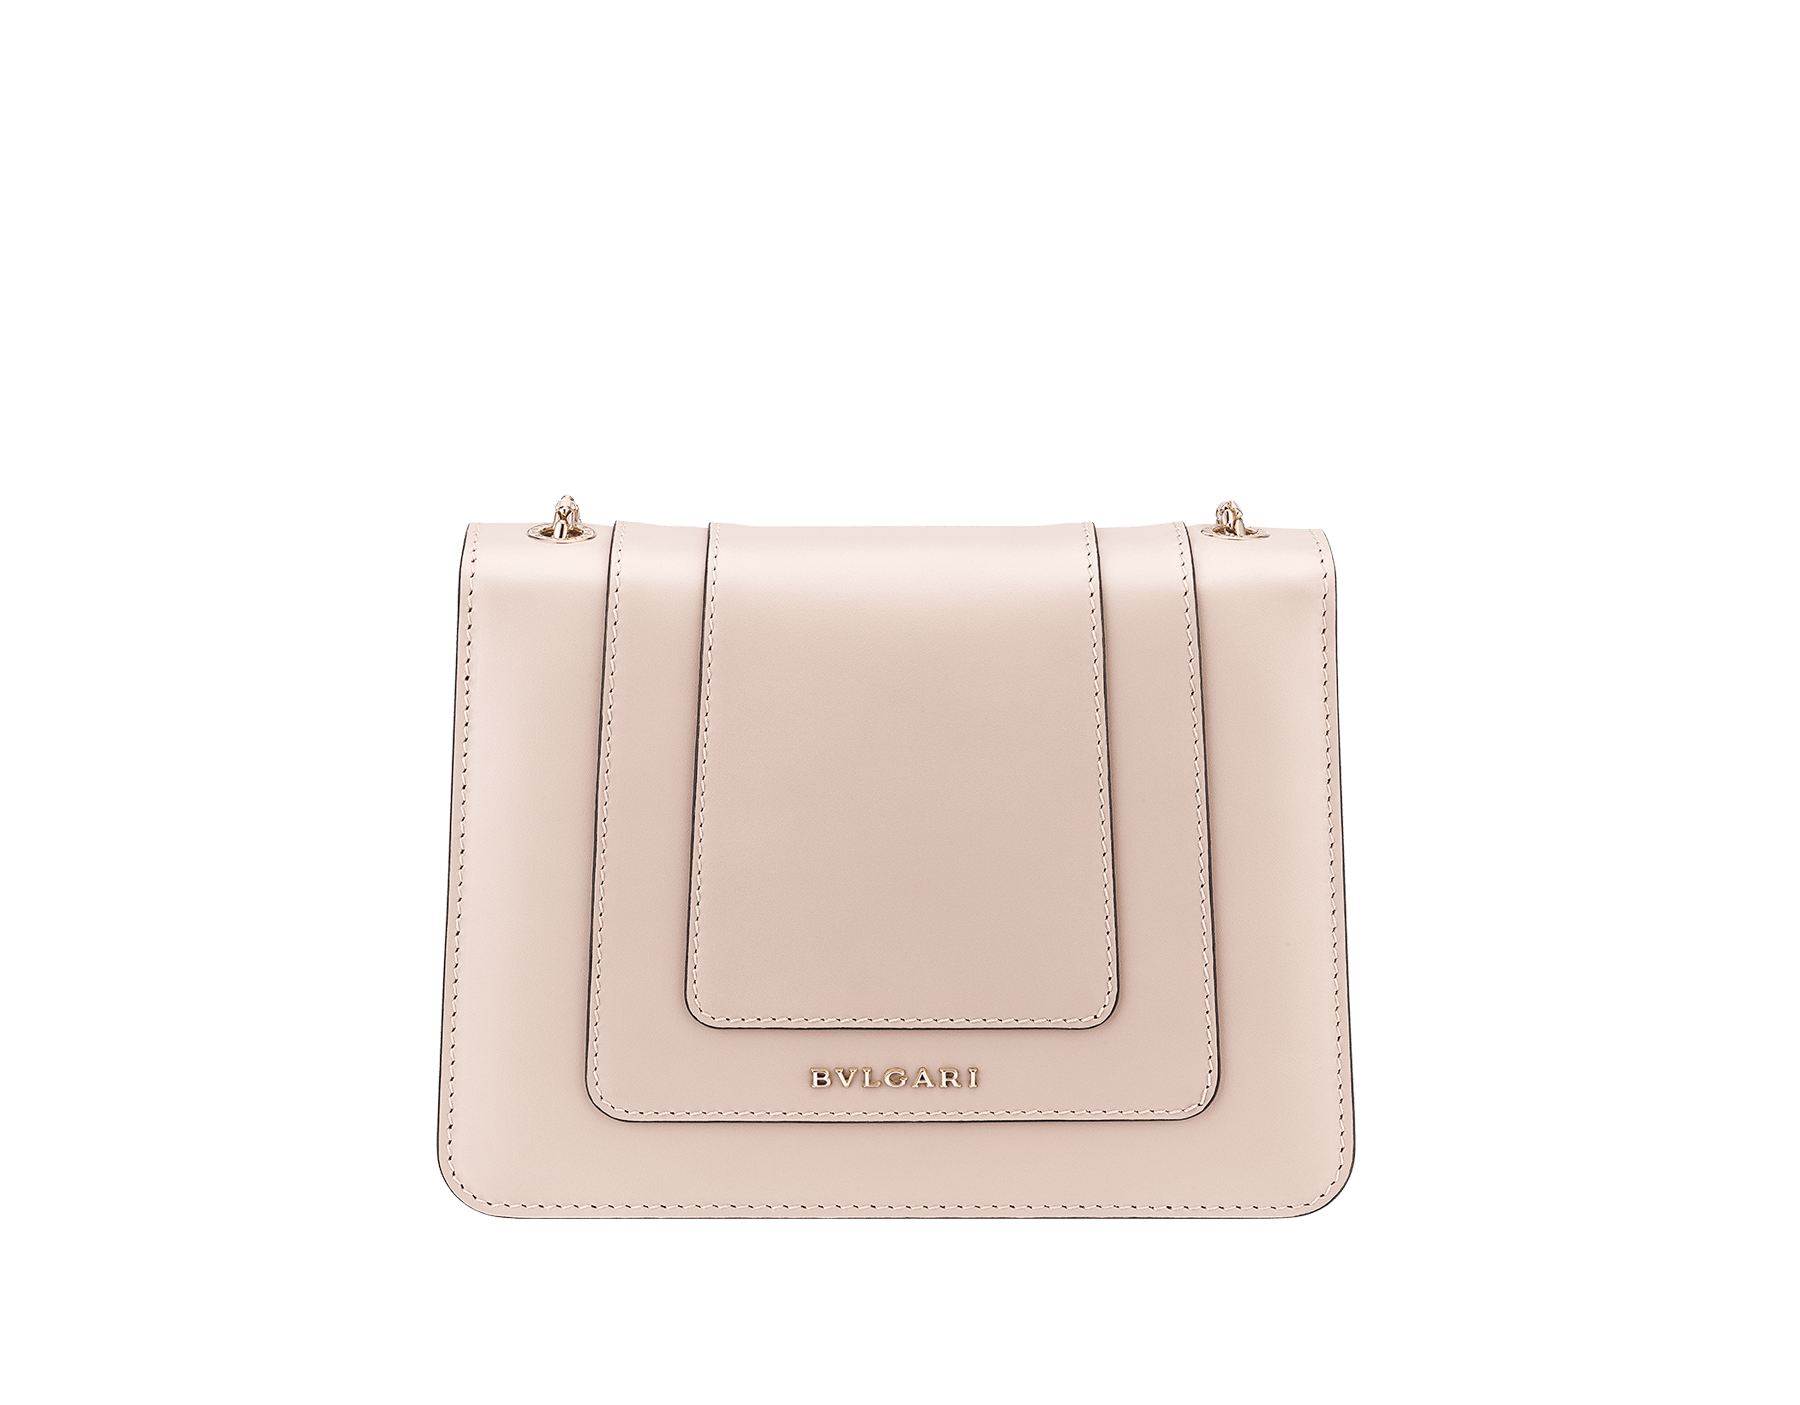 """Serpenti Forever"" crossbody bag in crystal rose calf leather. Iconic snakehead closure in light gold plated brass enriched with black and white enamel and green malachite eyes 287017 image 3"